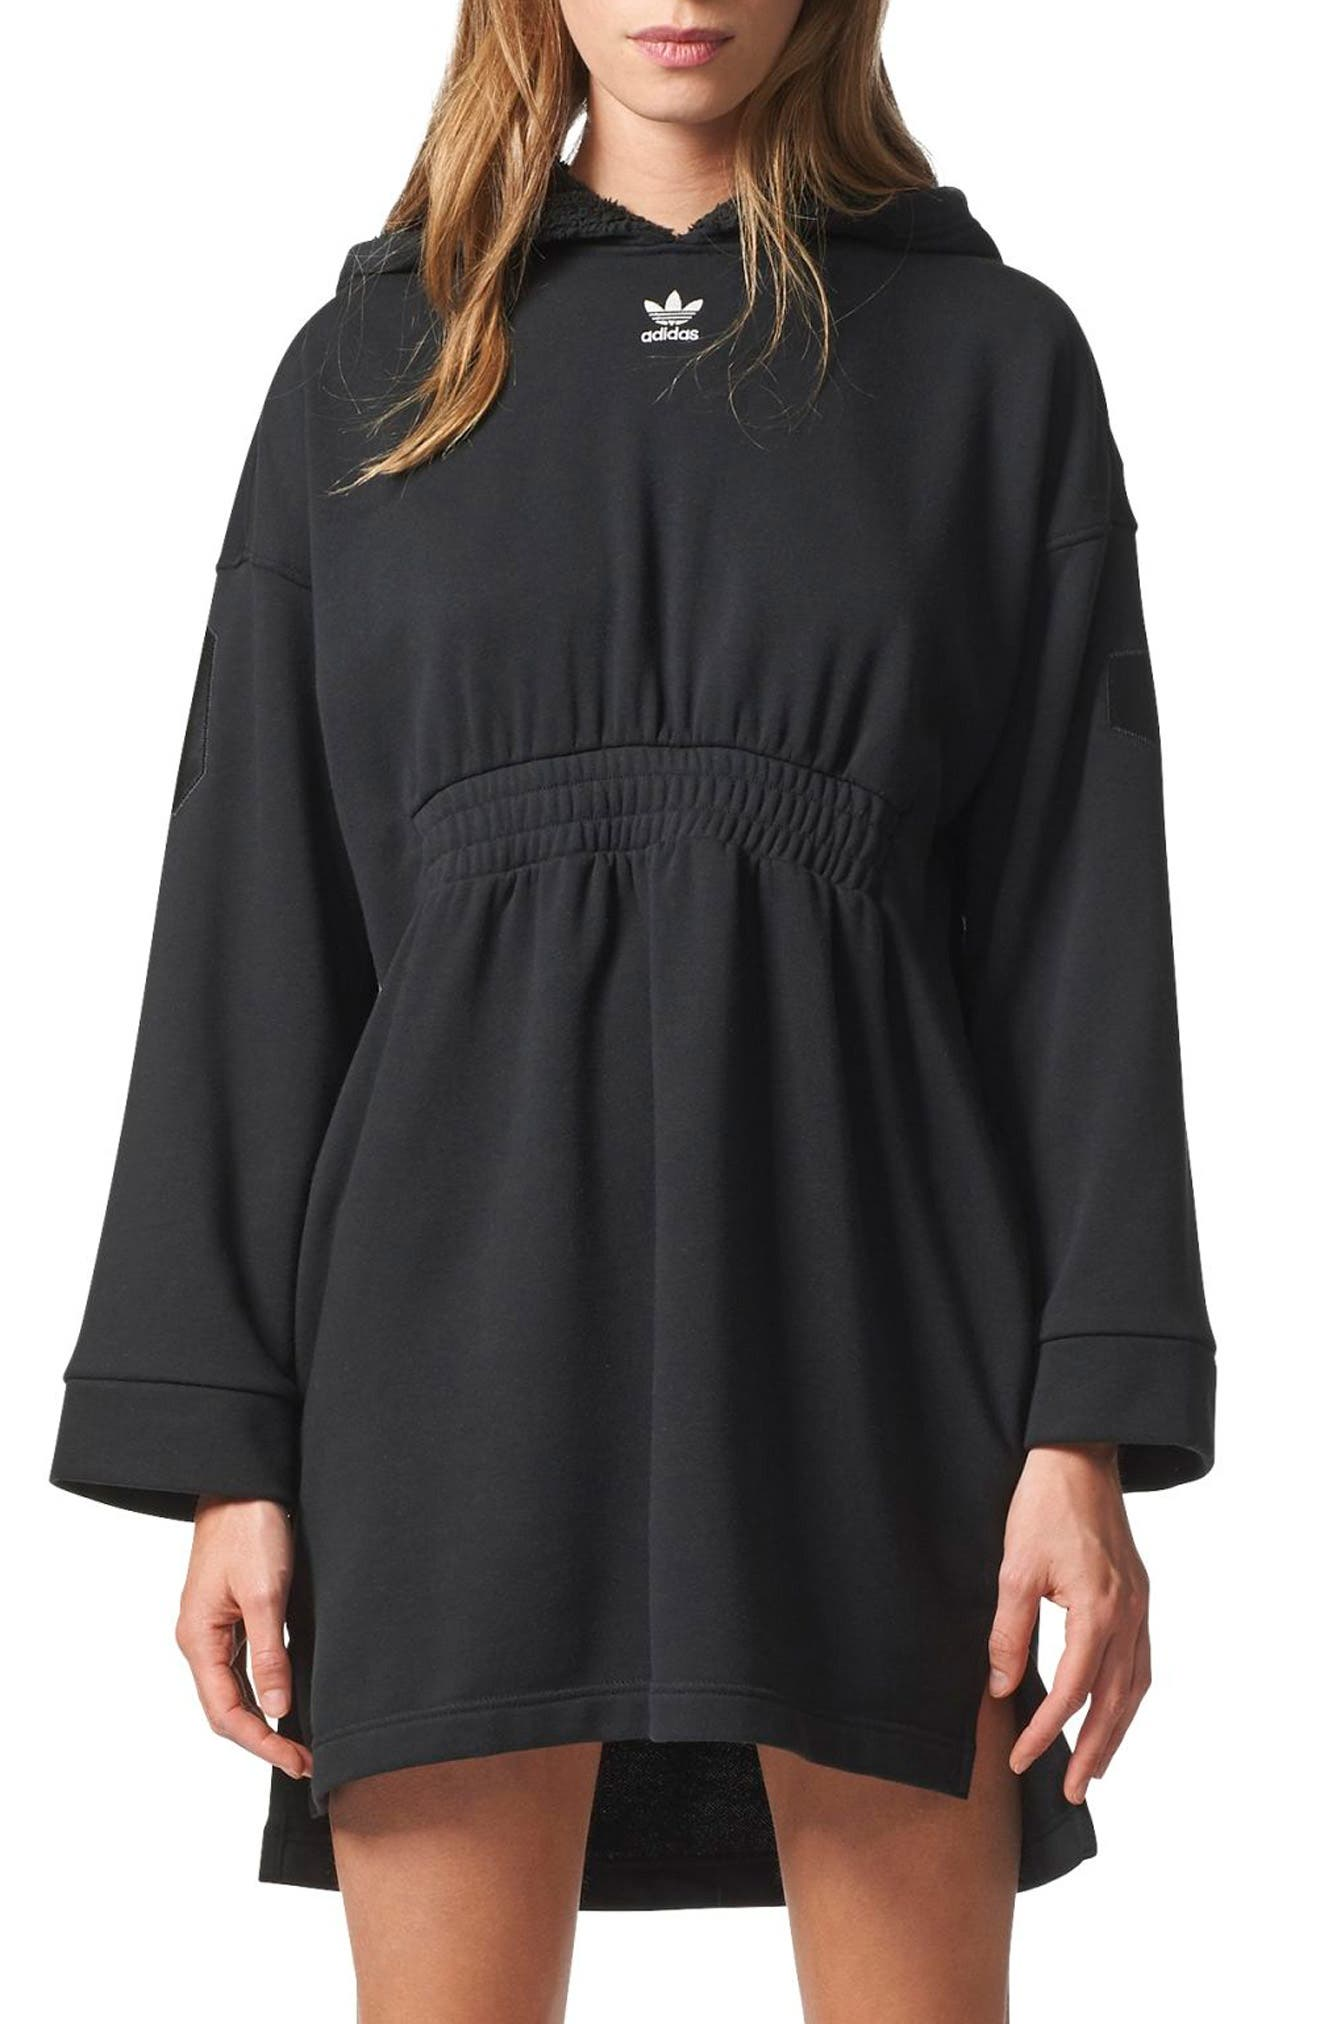 Originals Hooded French Terry Dress,                             Main thumbnail 1, color,                             Black